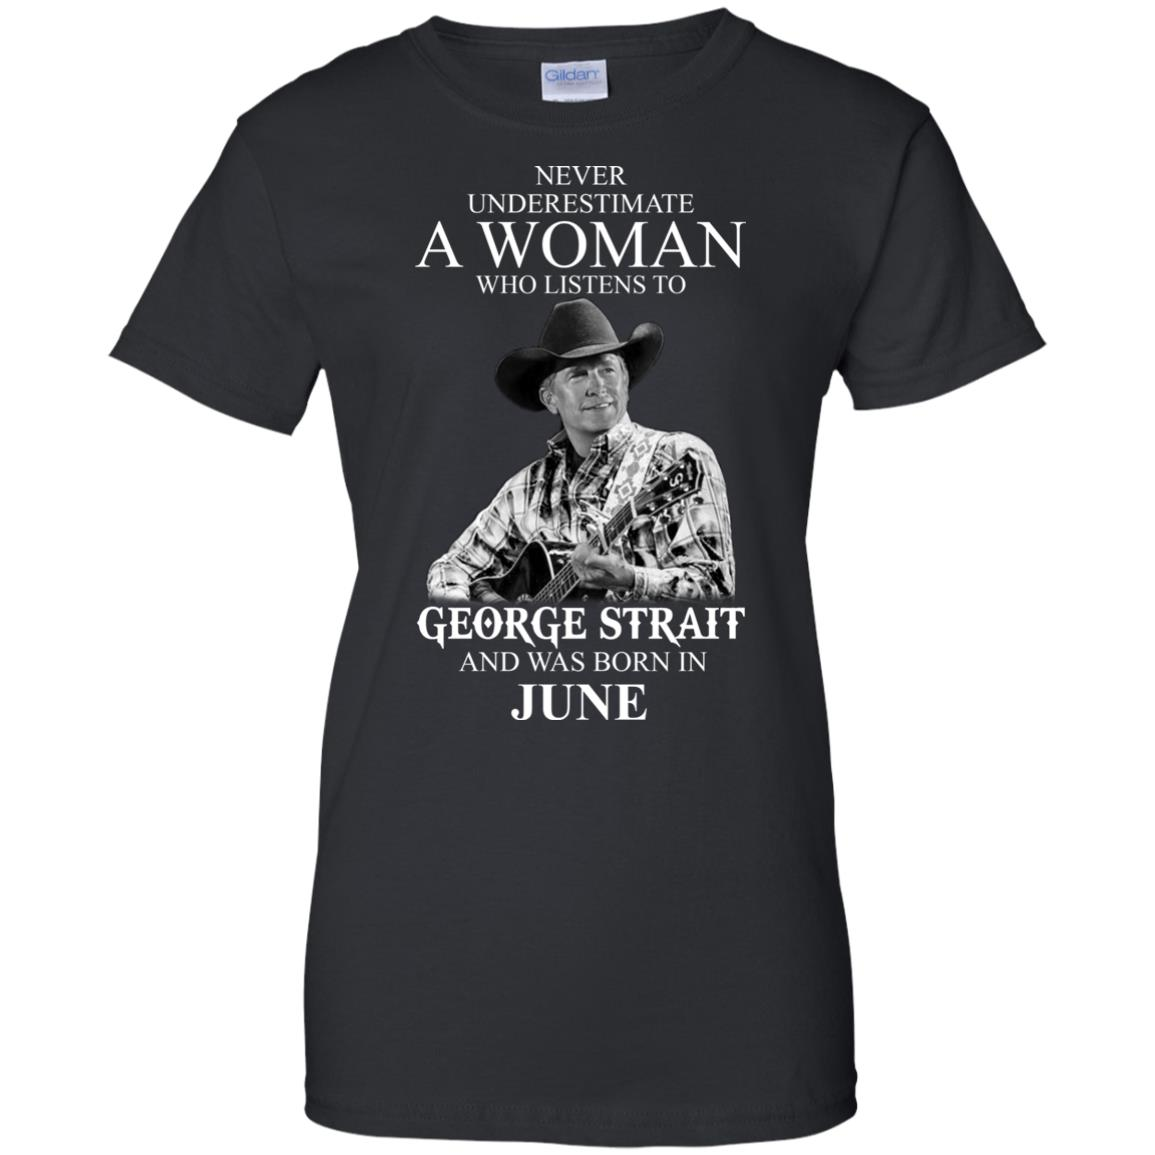 image 492 - Never Underestimate A Woman Who Listens To George Strait And Was Born In June shirt